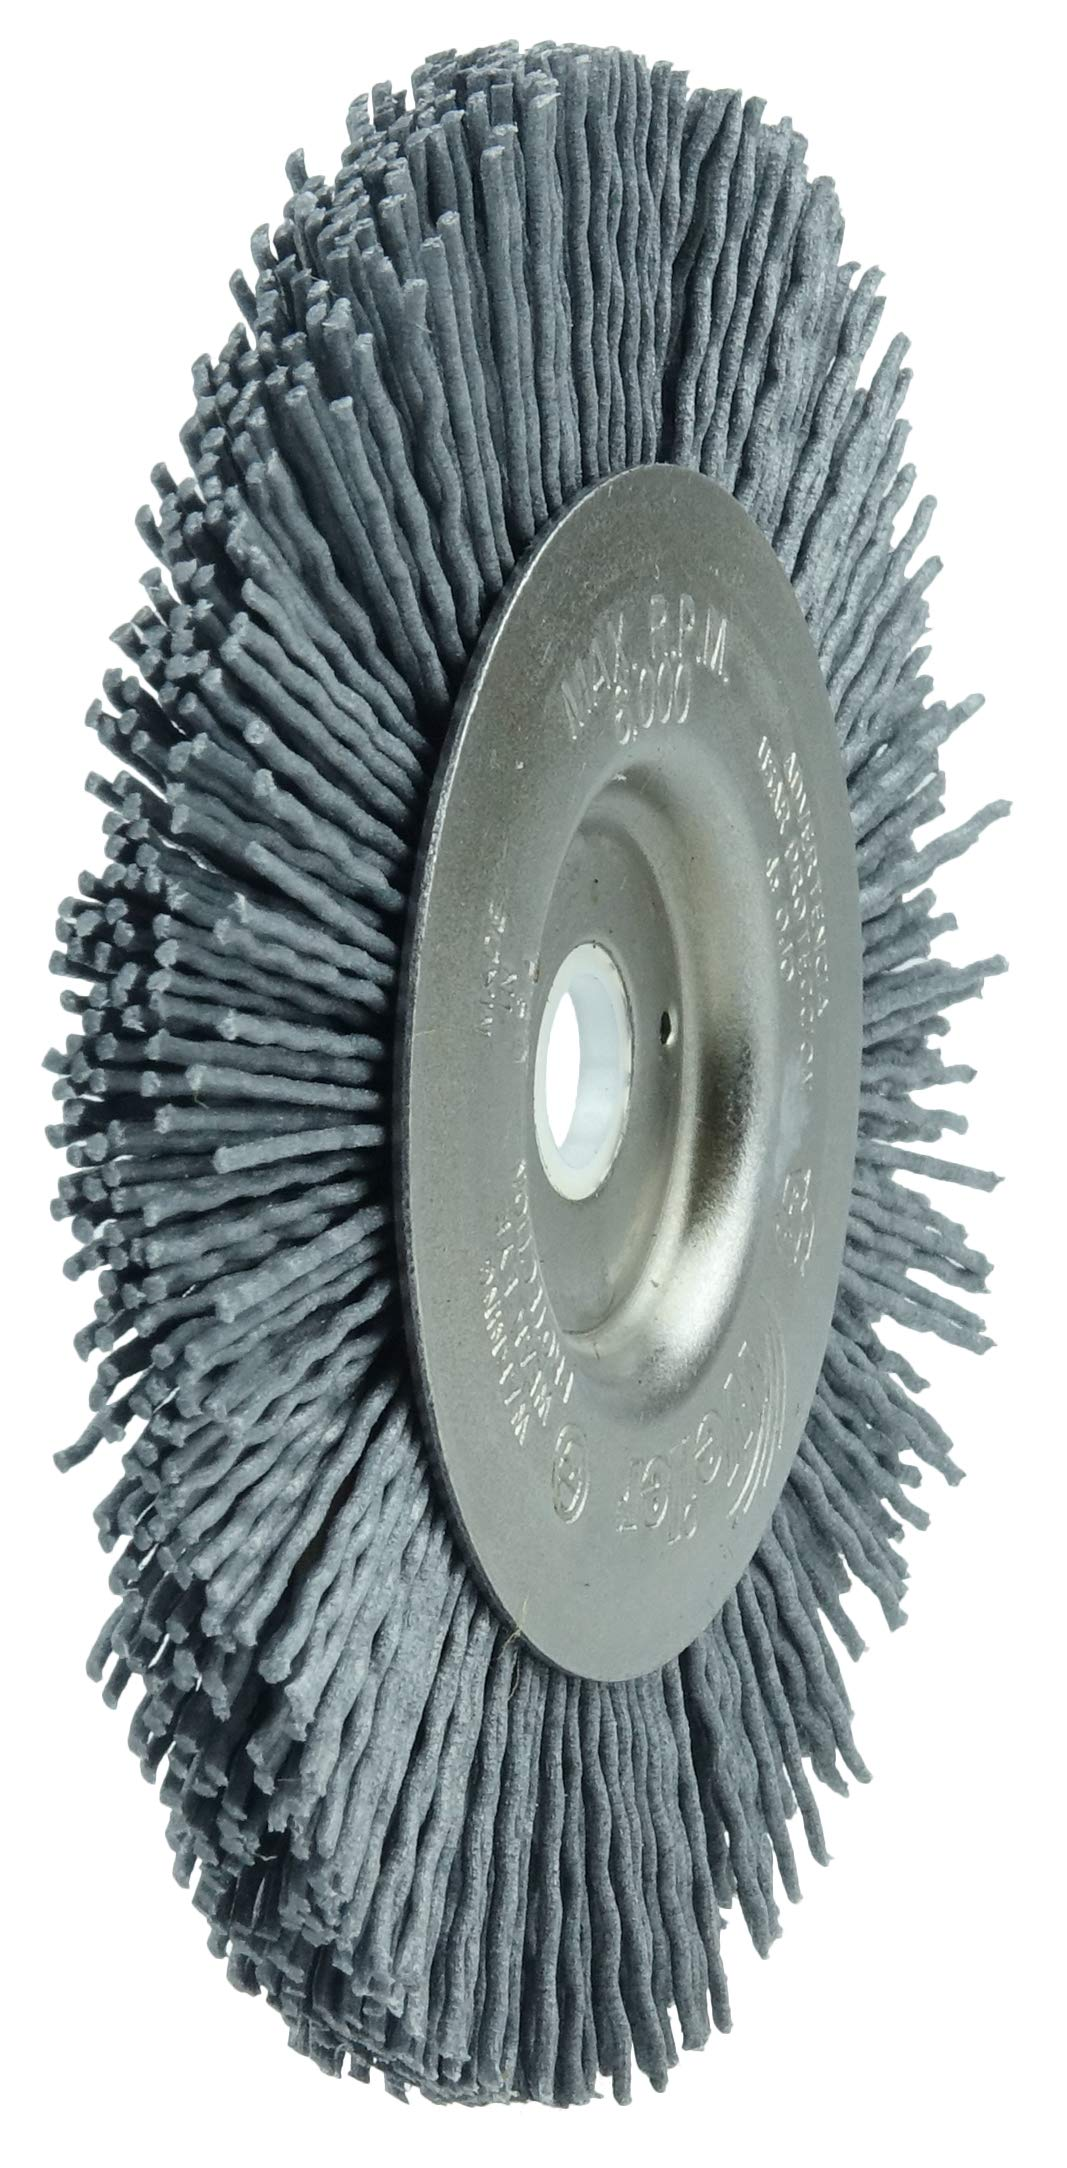 1//2 1//2 2 Length Double Stem//Single Spiral Pack of 10 Weiler Corporation Pack of 10 0.22//320SC Crimped Fill 2 Length Weiler 21130 Nylox Power Tube Brush